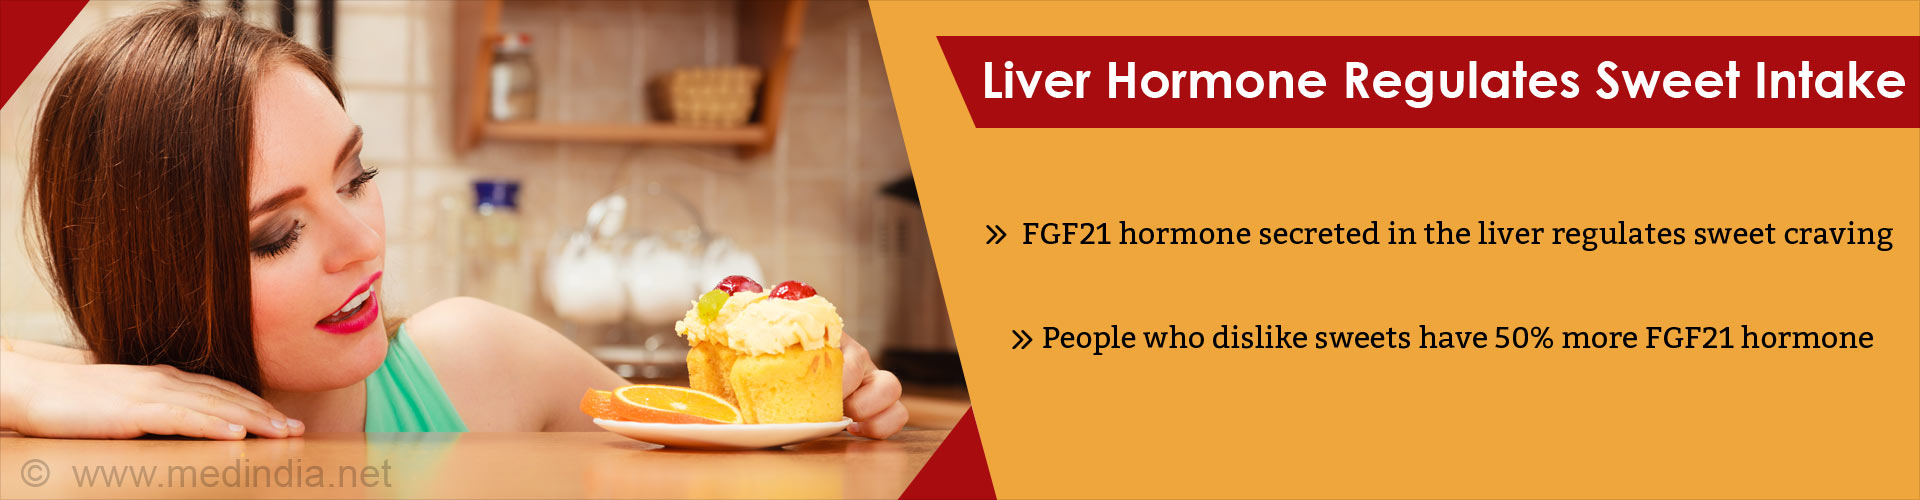 Health Tip on Hormone Regulating Sugar Craving